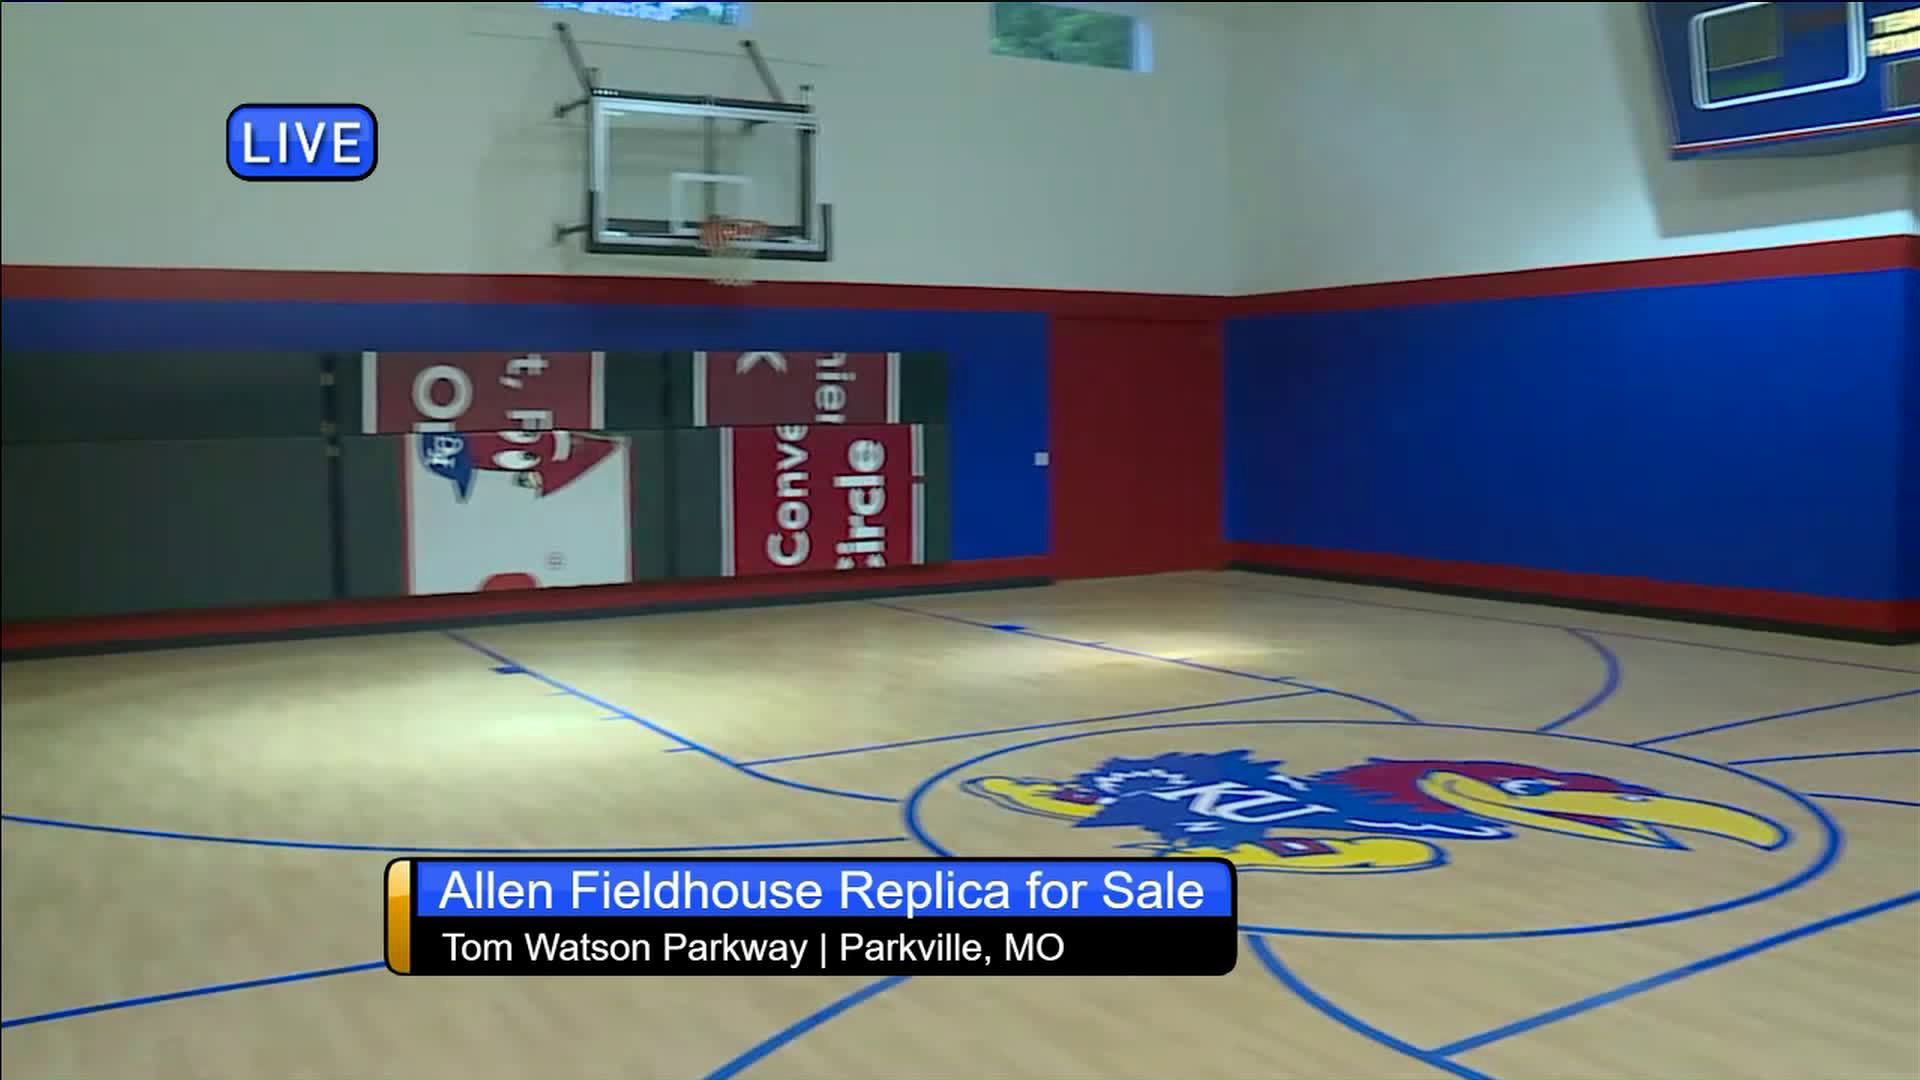 Local House With Replica Allen Fieldhouse Inside Goes Up For Sale Fox 4 Kansas City Wdaf Tv News Weather Sports